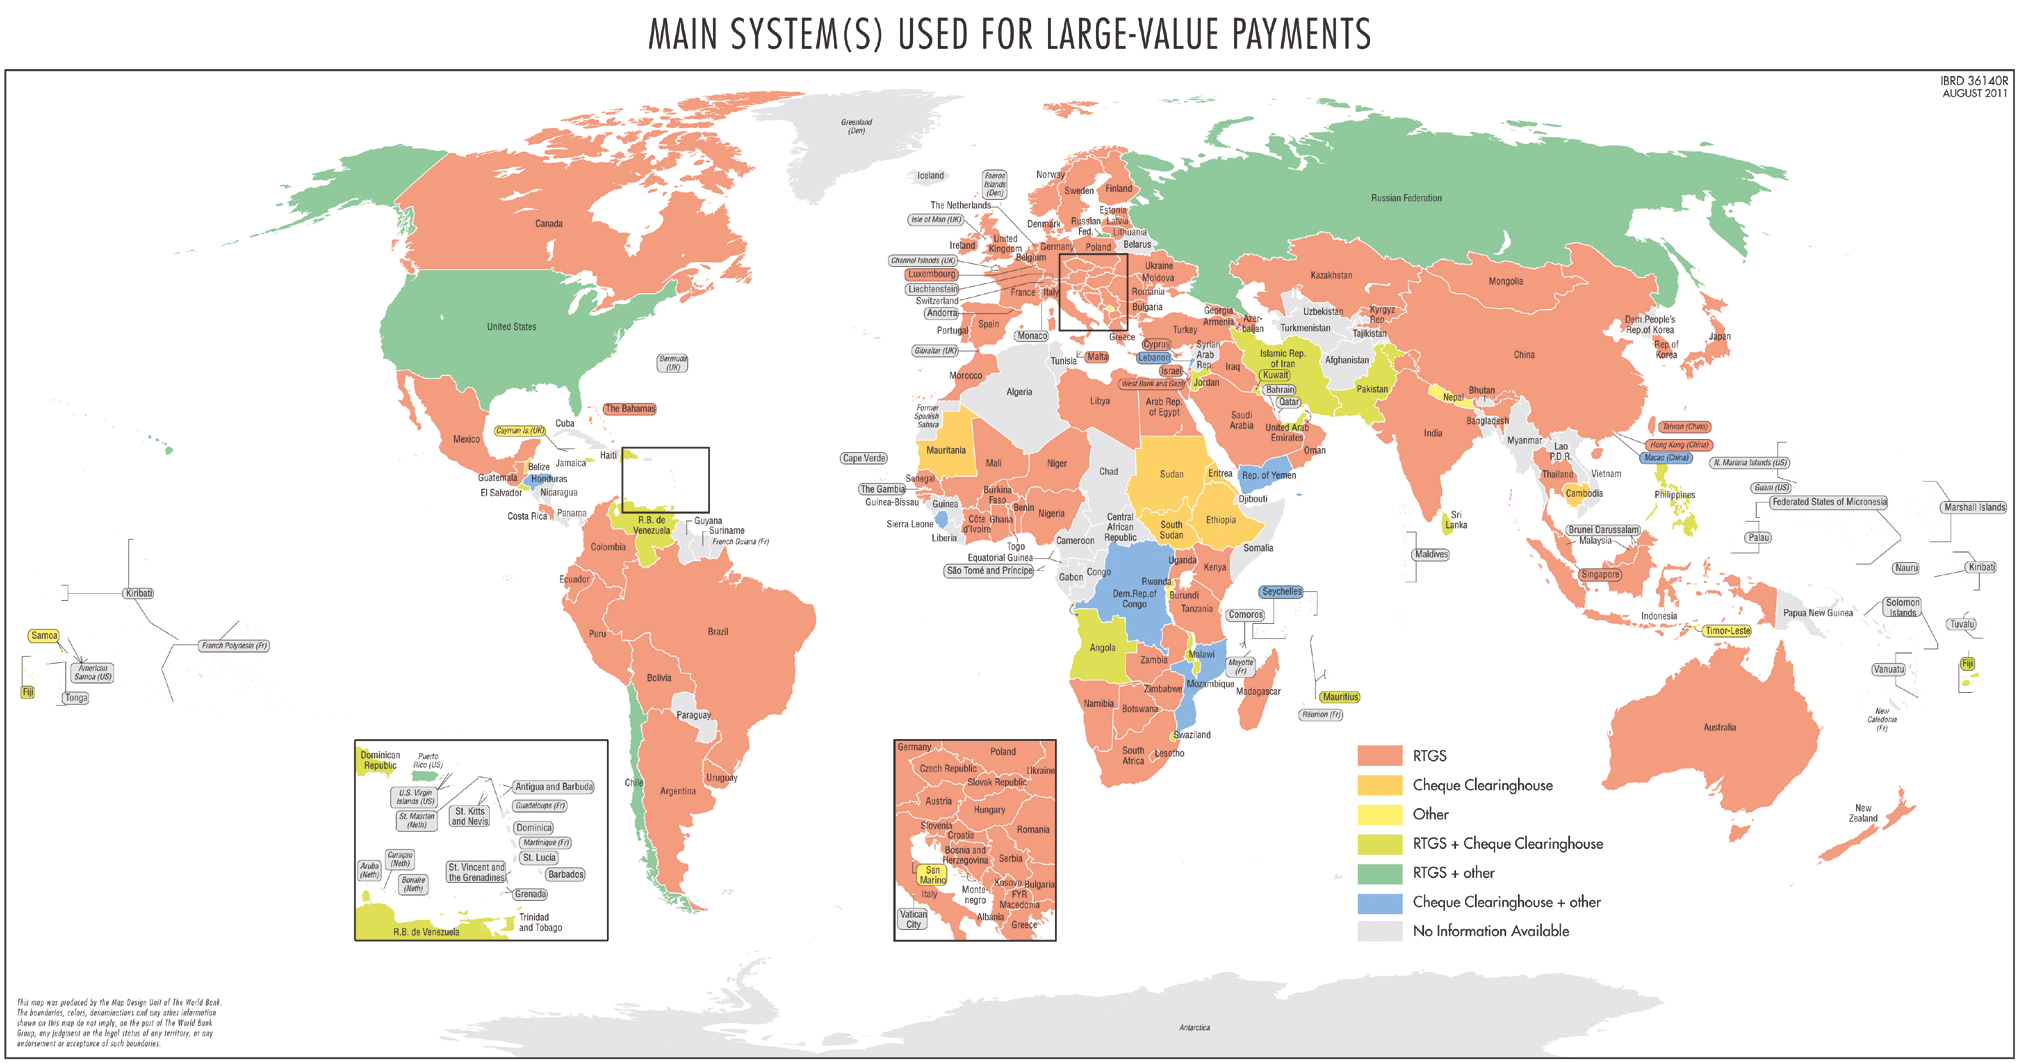 World map with main system(s) used for large value payments